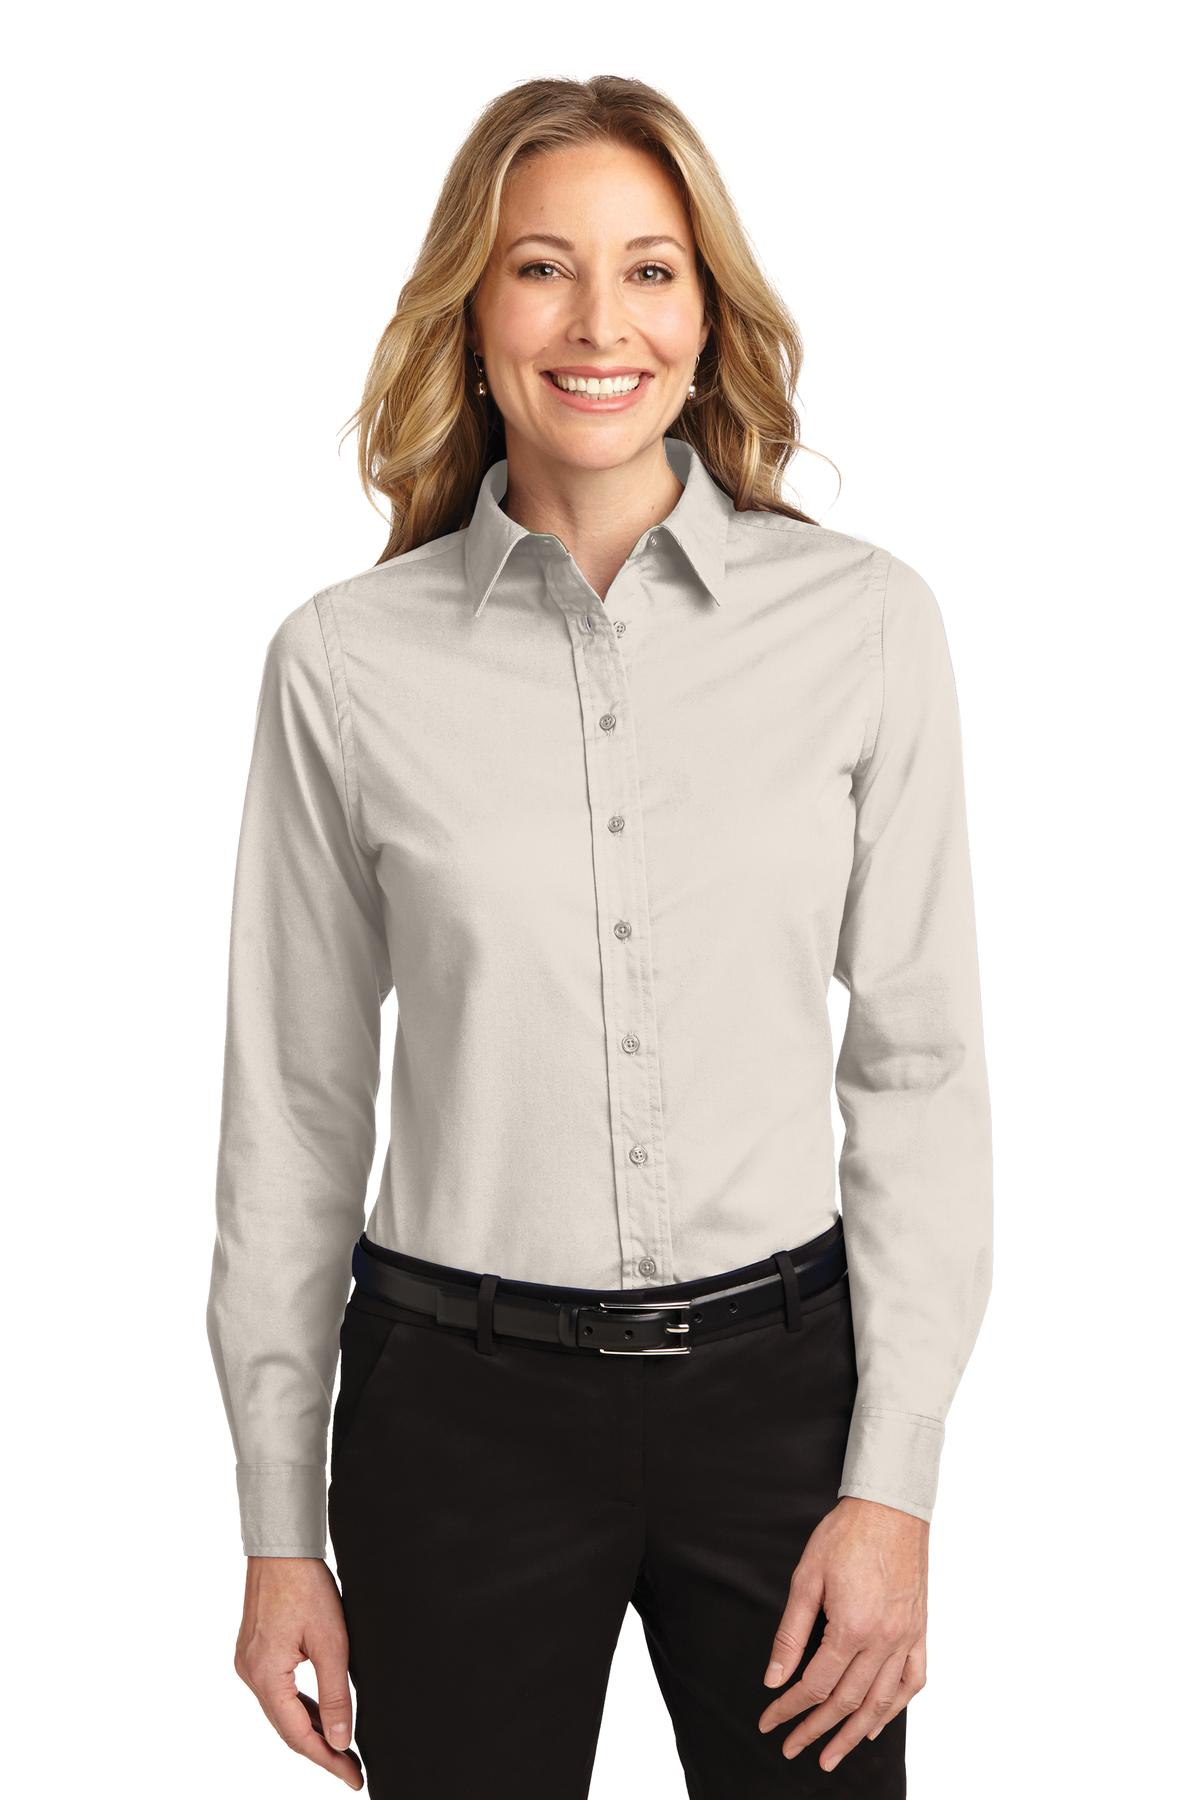 Light Stone / Classic Navy Port Authority Ladies Long Sleeve Easy Care Shirt.